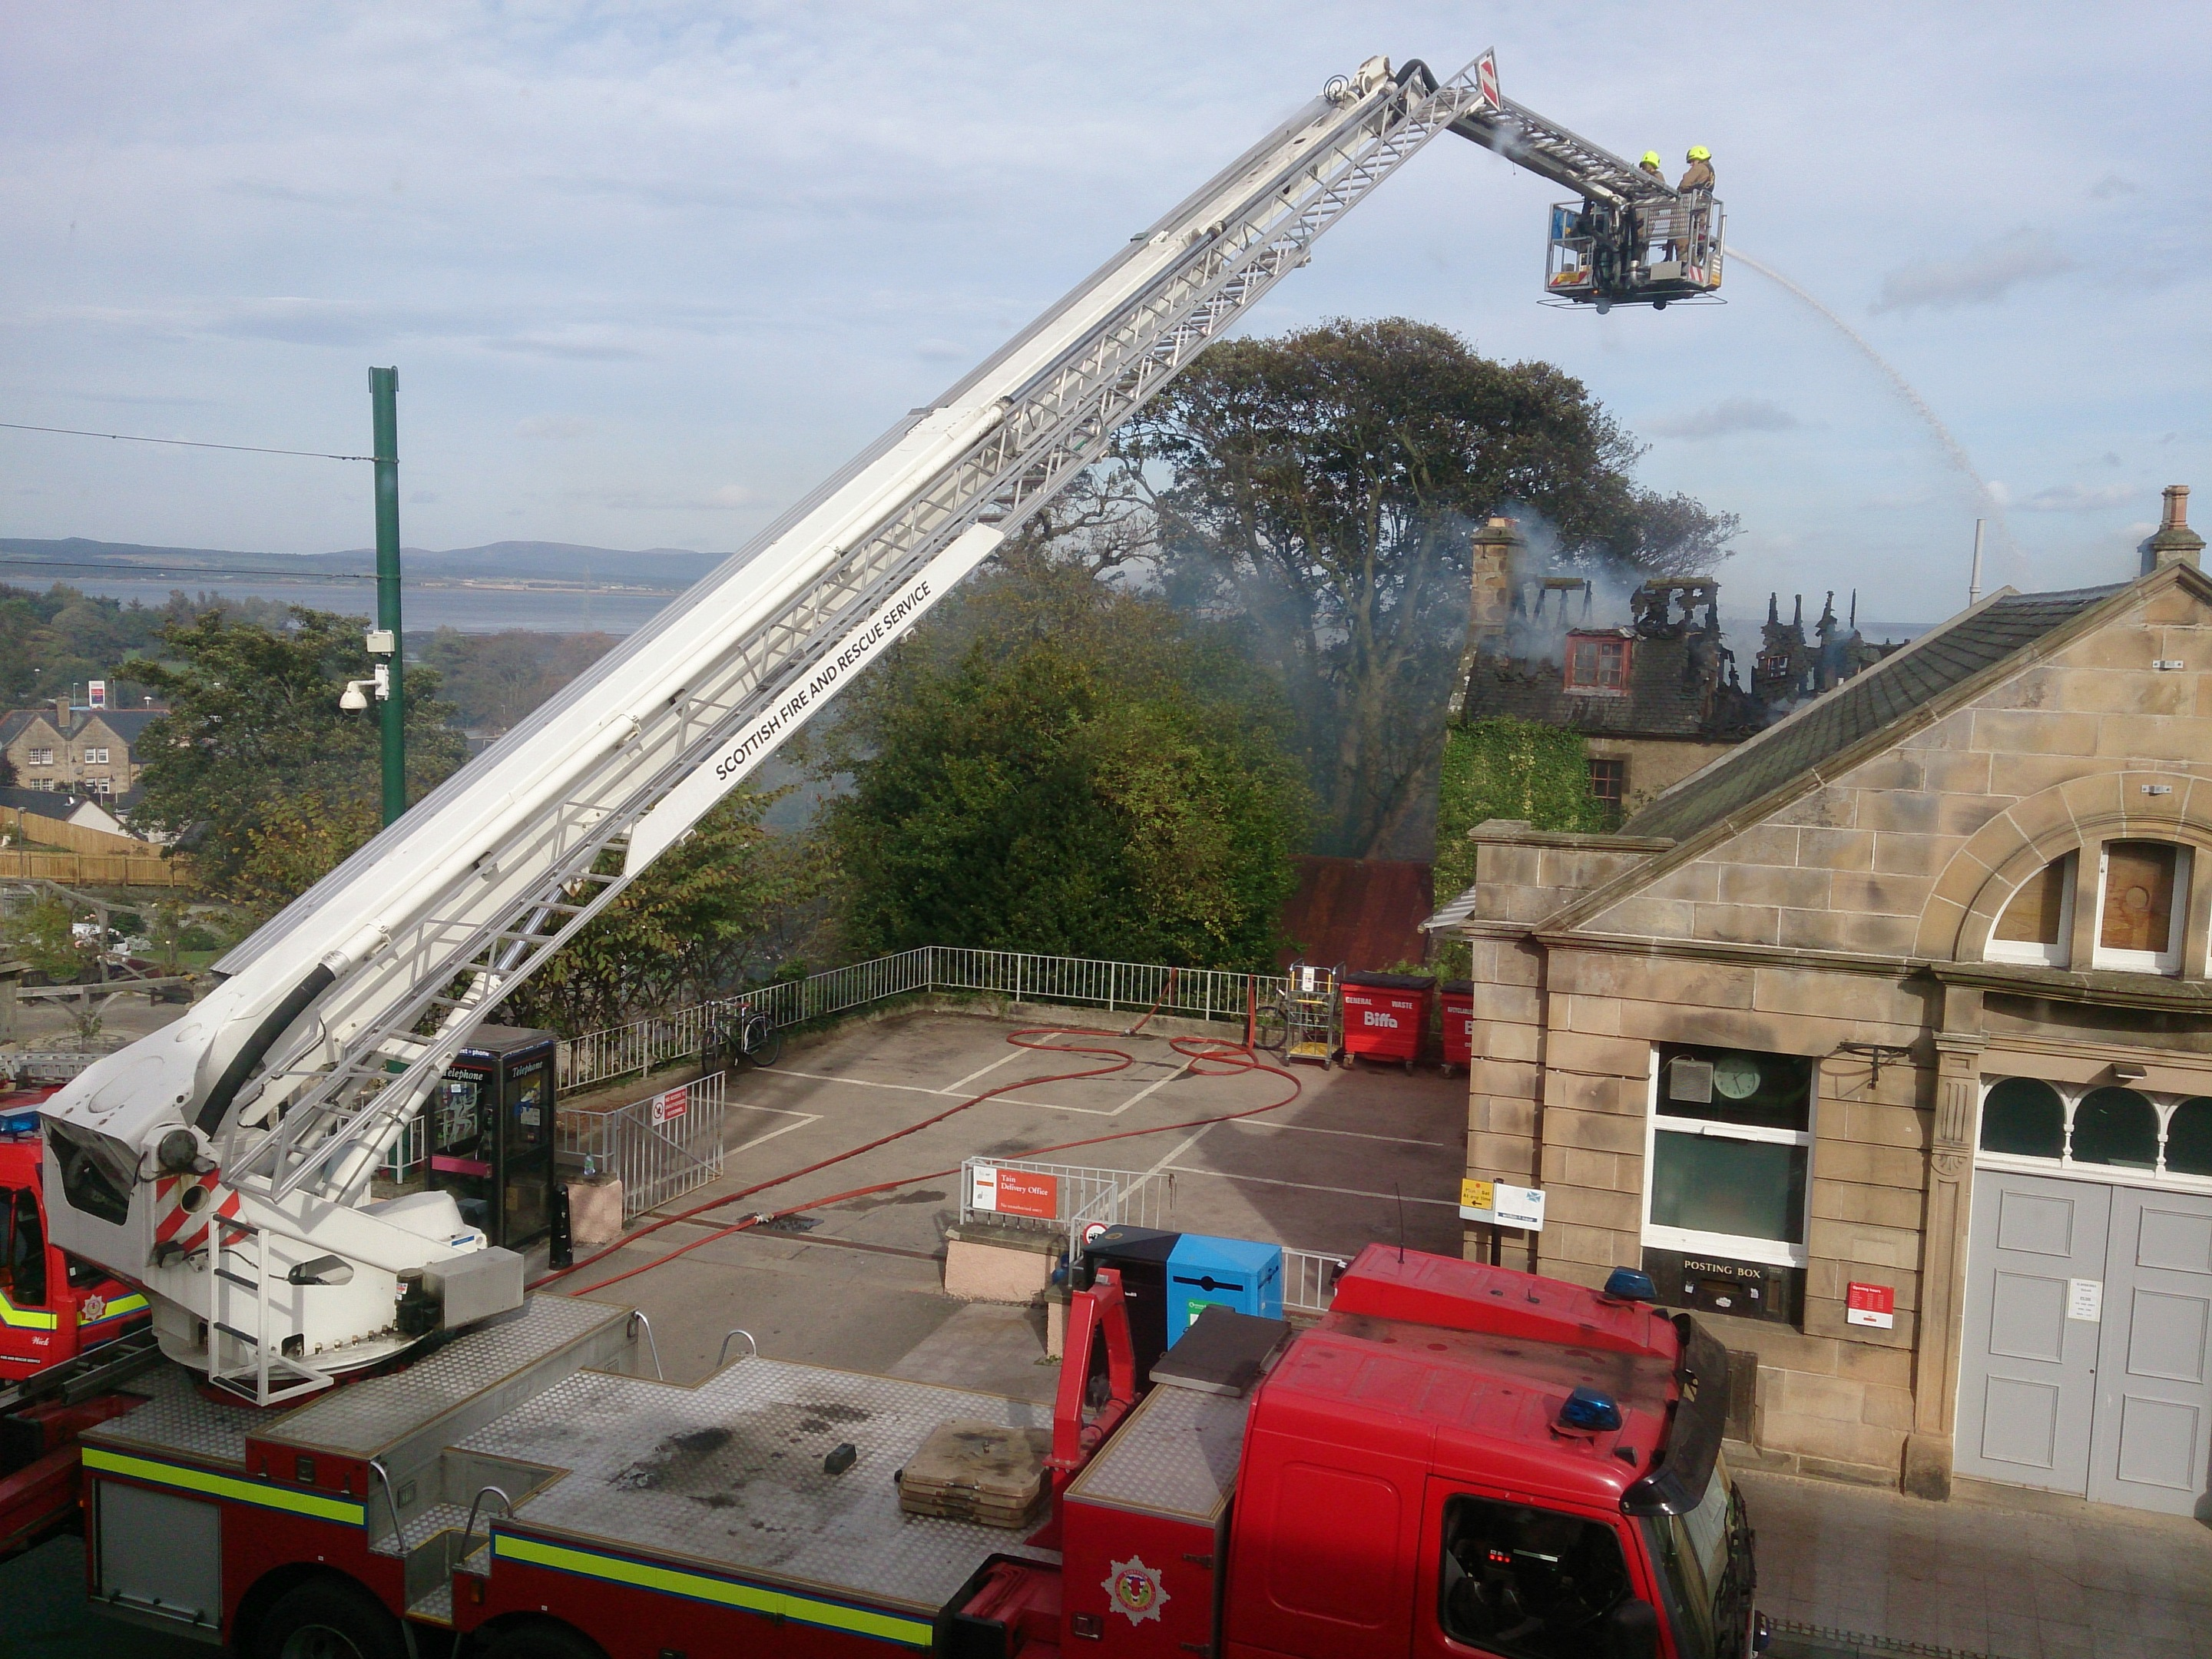 Firefighters used a hydraulic platform to extinguish the blaze